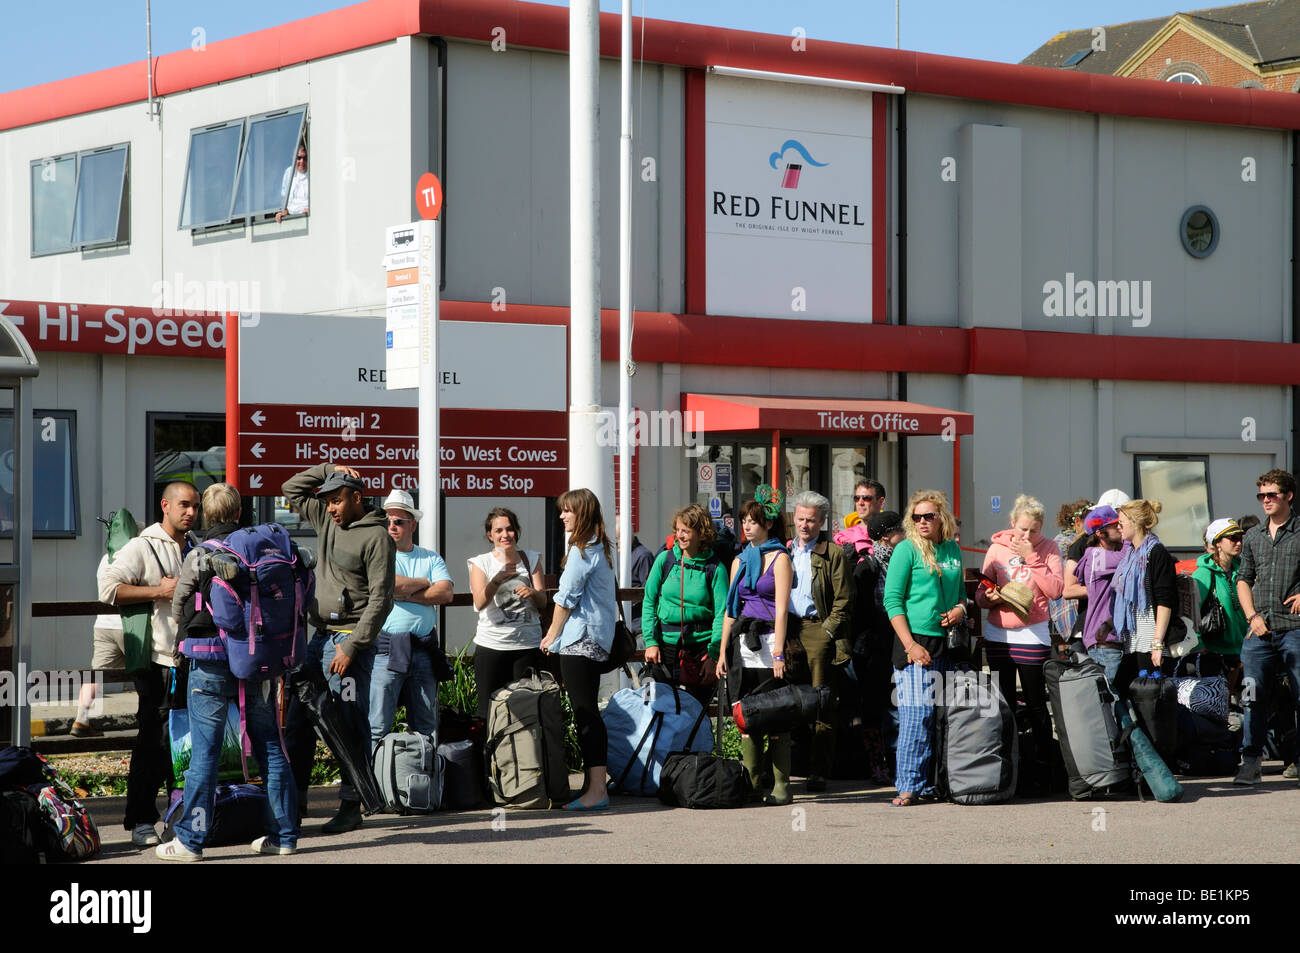 Crowded bus stop outside Red Funnel ferry terminal building Southampton England UK - Stock Image